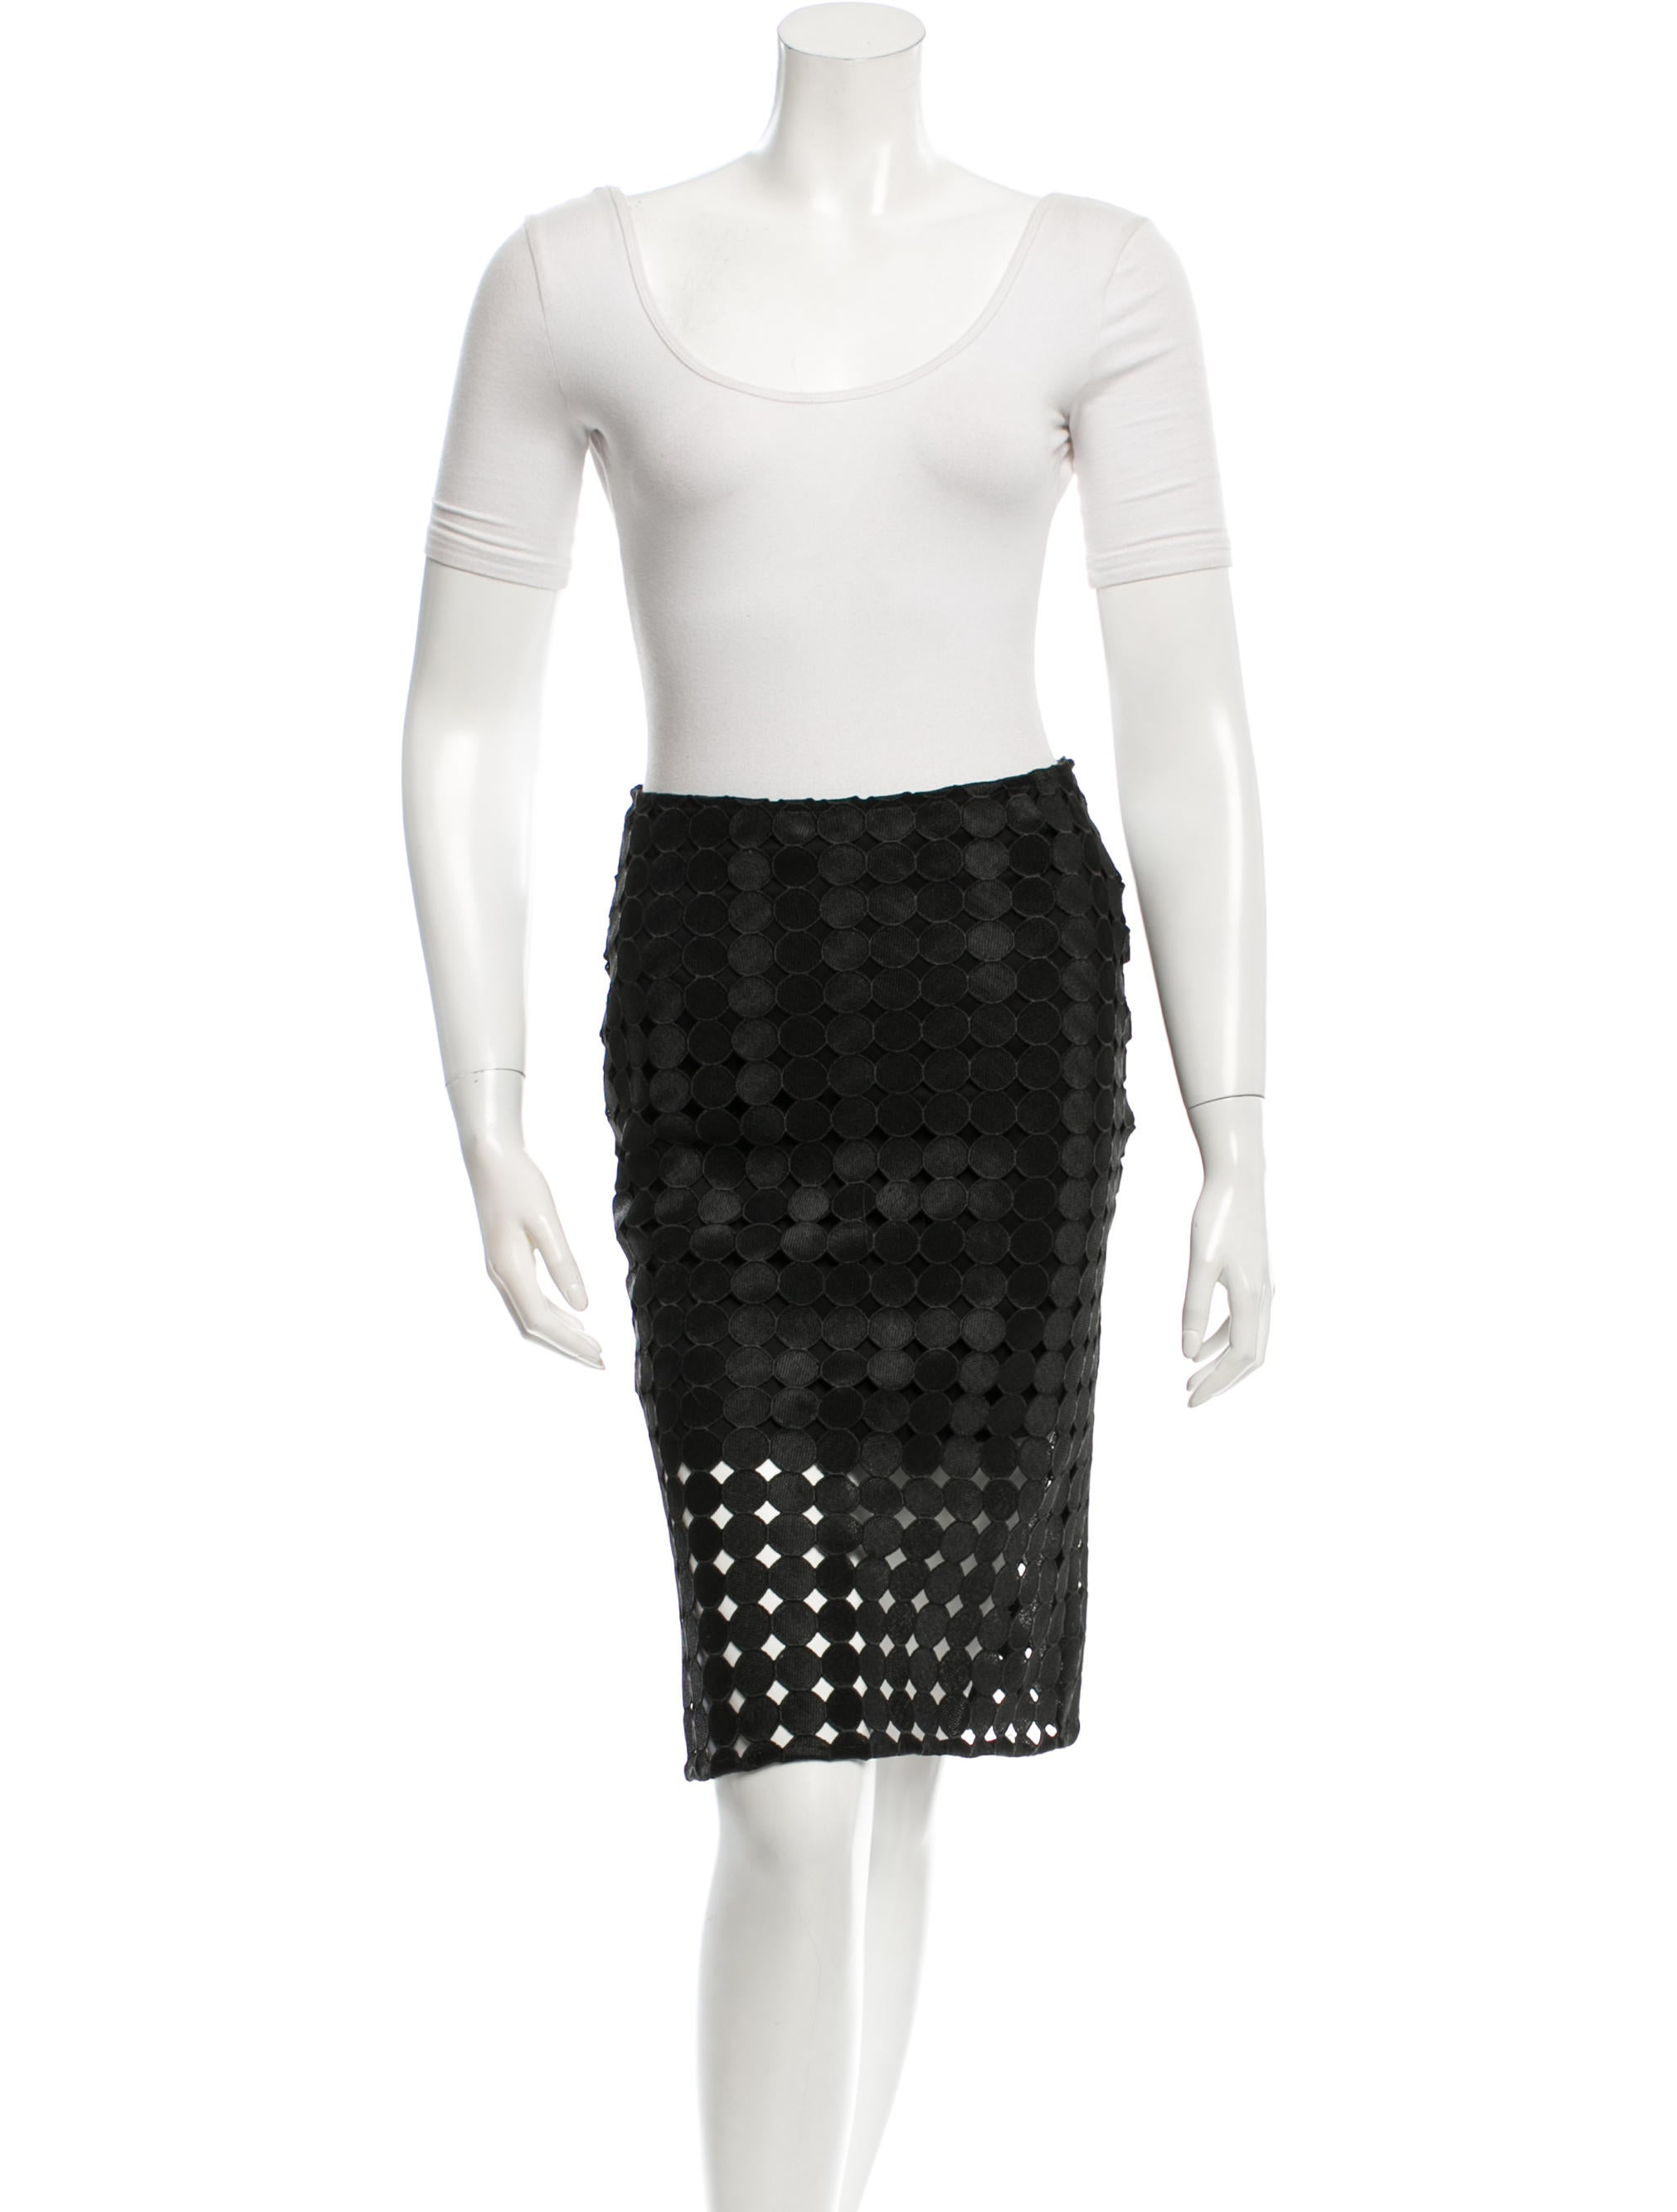 You searched for: knit skirt top set! Etsy is the home to thousands of handmade, vintage, and one-of-a-kind products and gifts related to your search. No matter what you're looking for or where you are in the world, our global marketplace of sellers can help you find unique and affordable options. Let's get started!